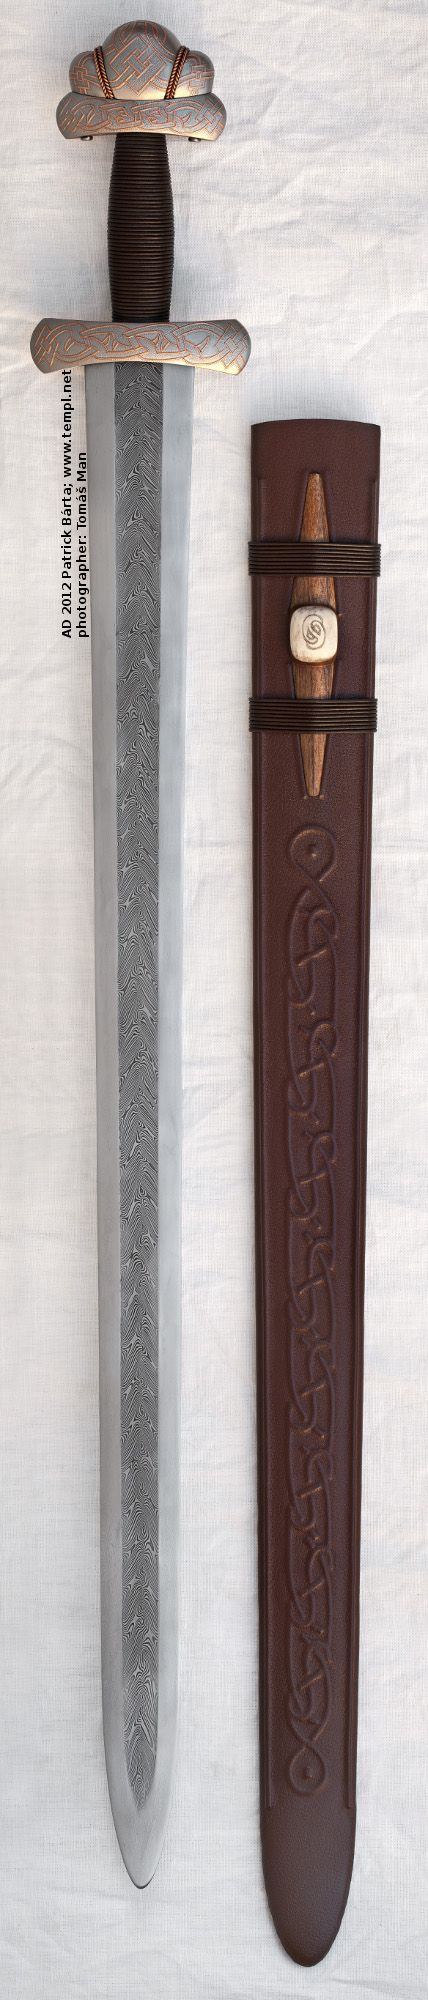 Viking sword with scabbard full view, hilt from cooper inlay iron, pattern-welded blade, other possibility of reconstruction. 8th Century. Gjermundbu, Norway.